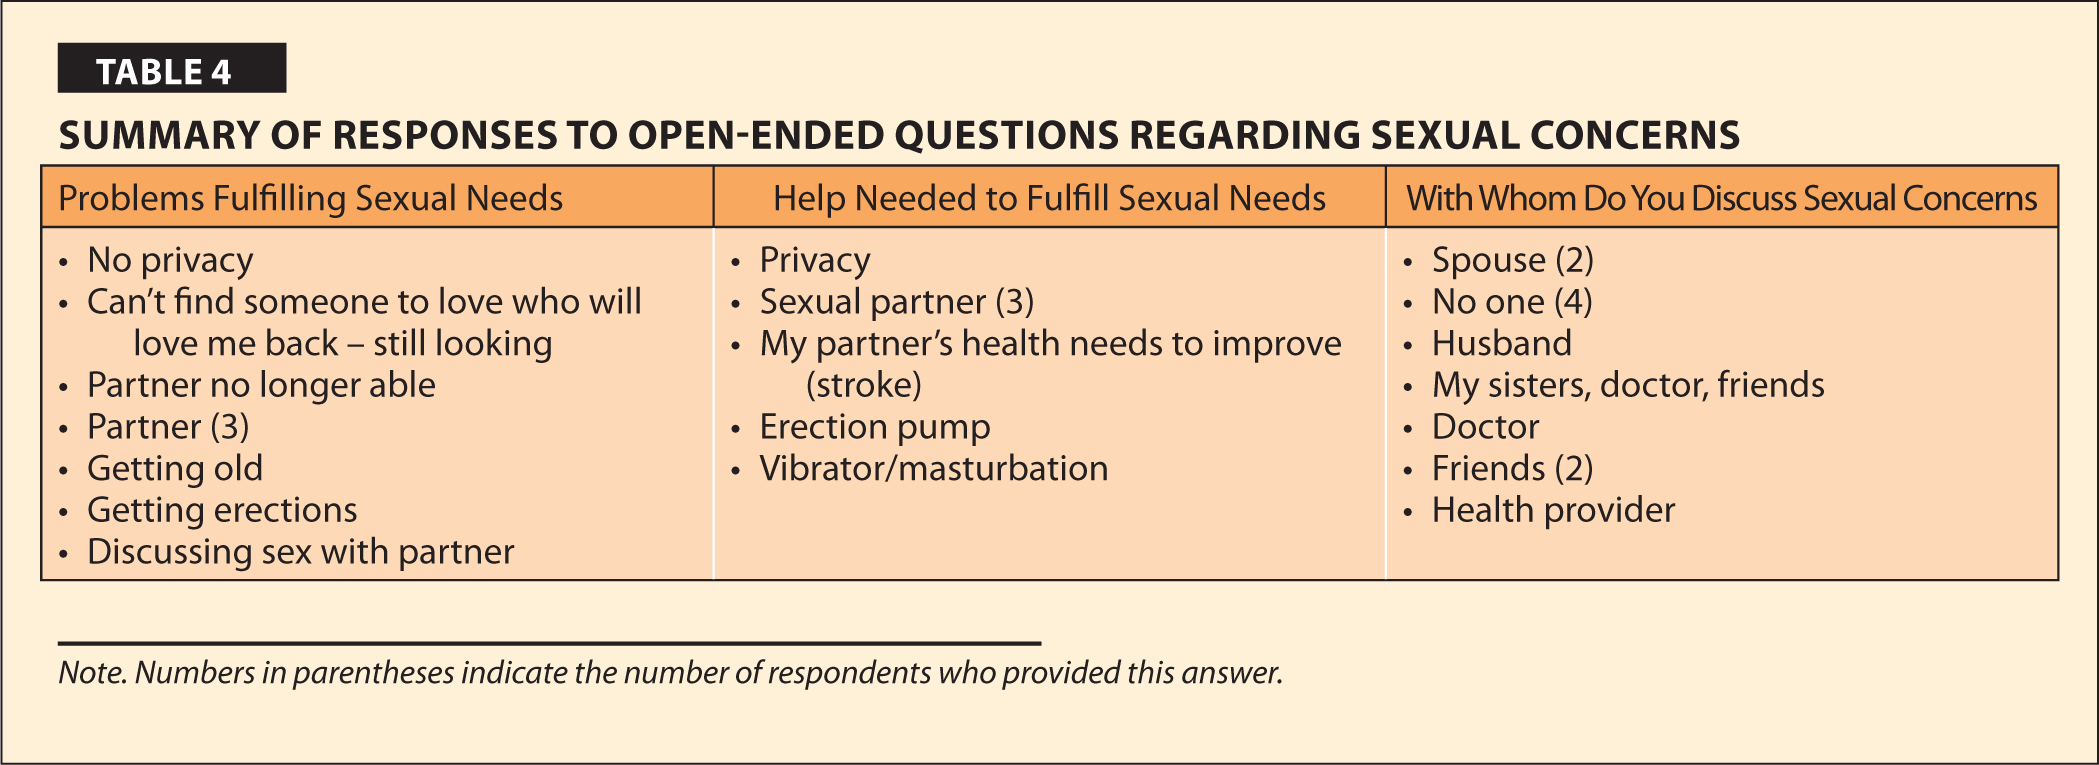 Summary of Responses to Open-Ended Questions Regarding Sexual Concerns